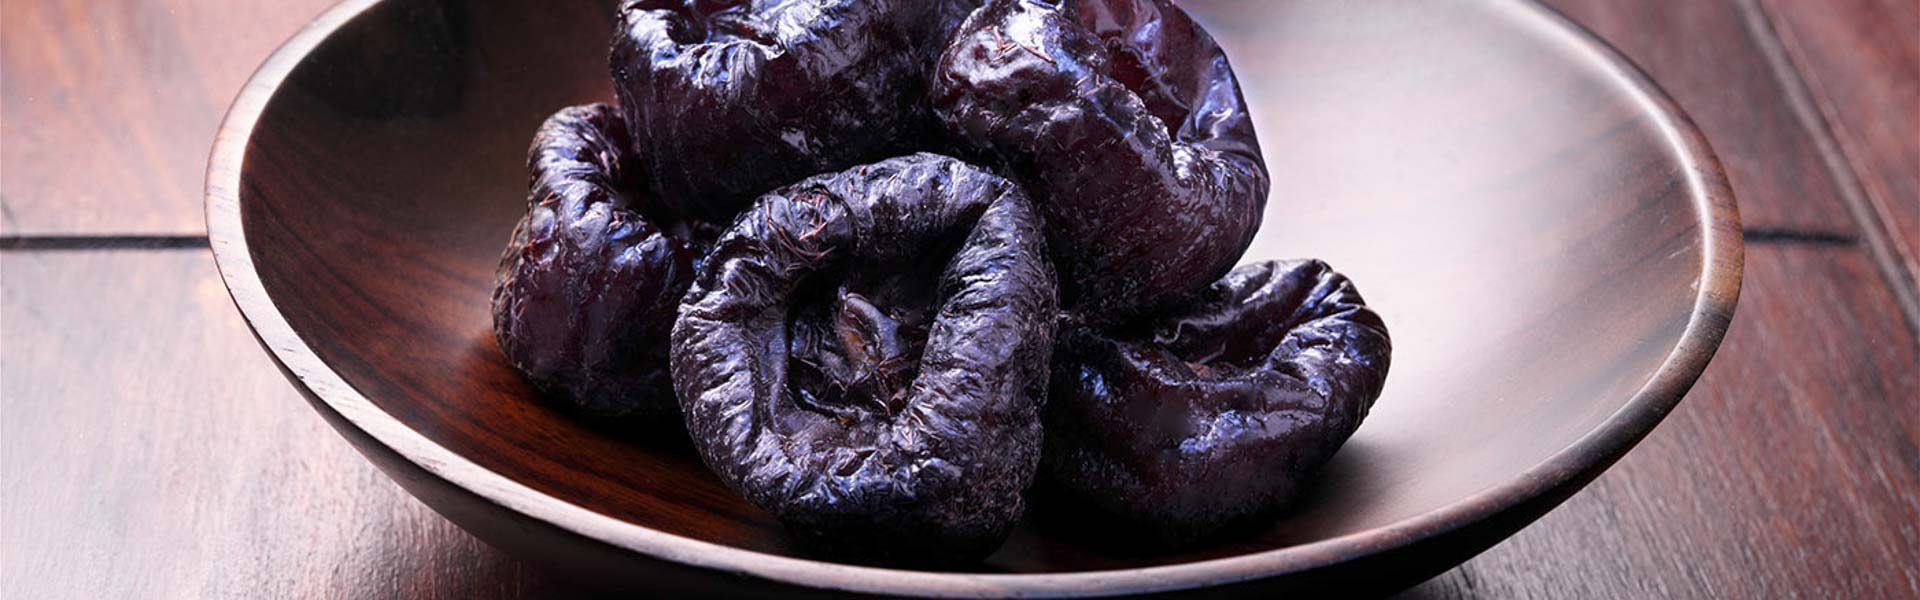 Prunes are well-known for offering digestive benefits.